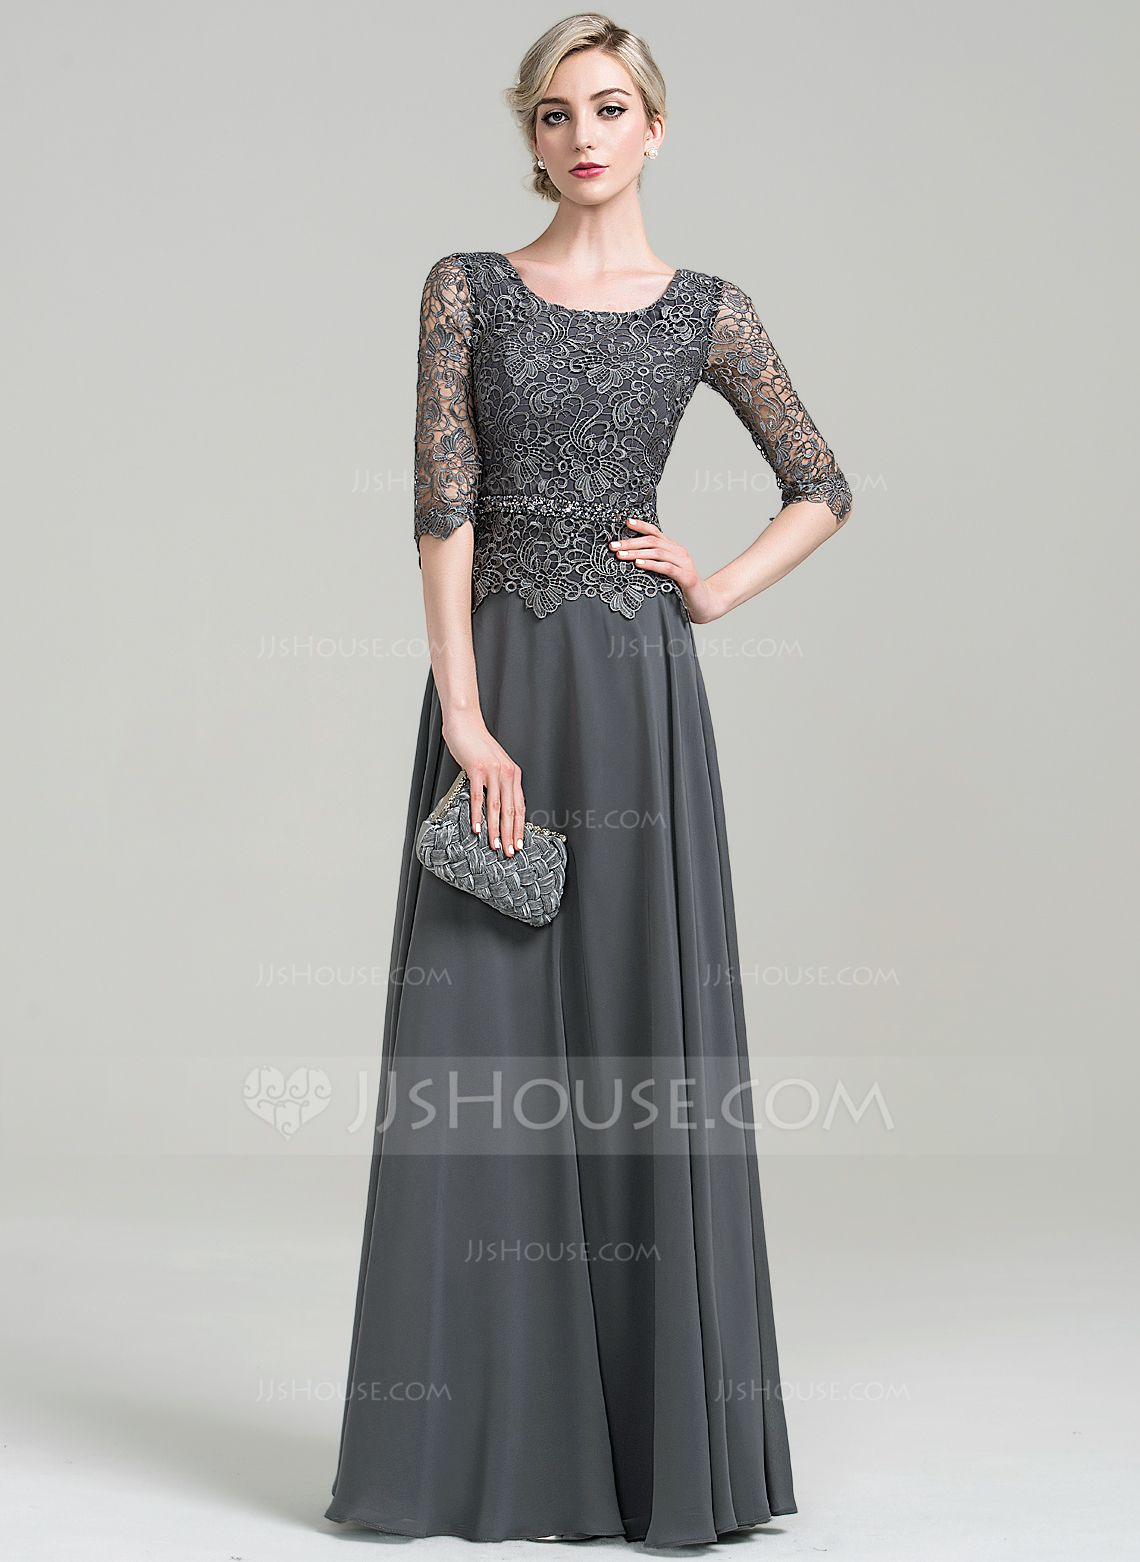 56617afa2f29 A-Line/Princess Scoop Neck Floor-Length Beading Sequins Zipper Up Sleeves 1/2  Sleeves No 2016 Other Colors General Plus Chiffon Mother of the Bride Dress